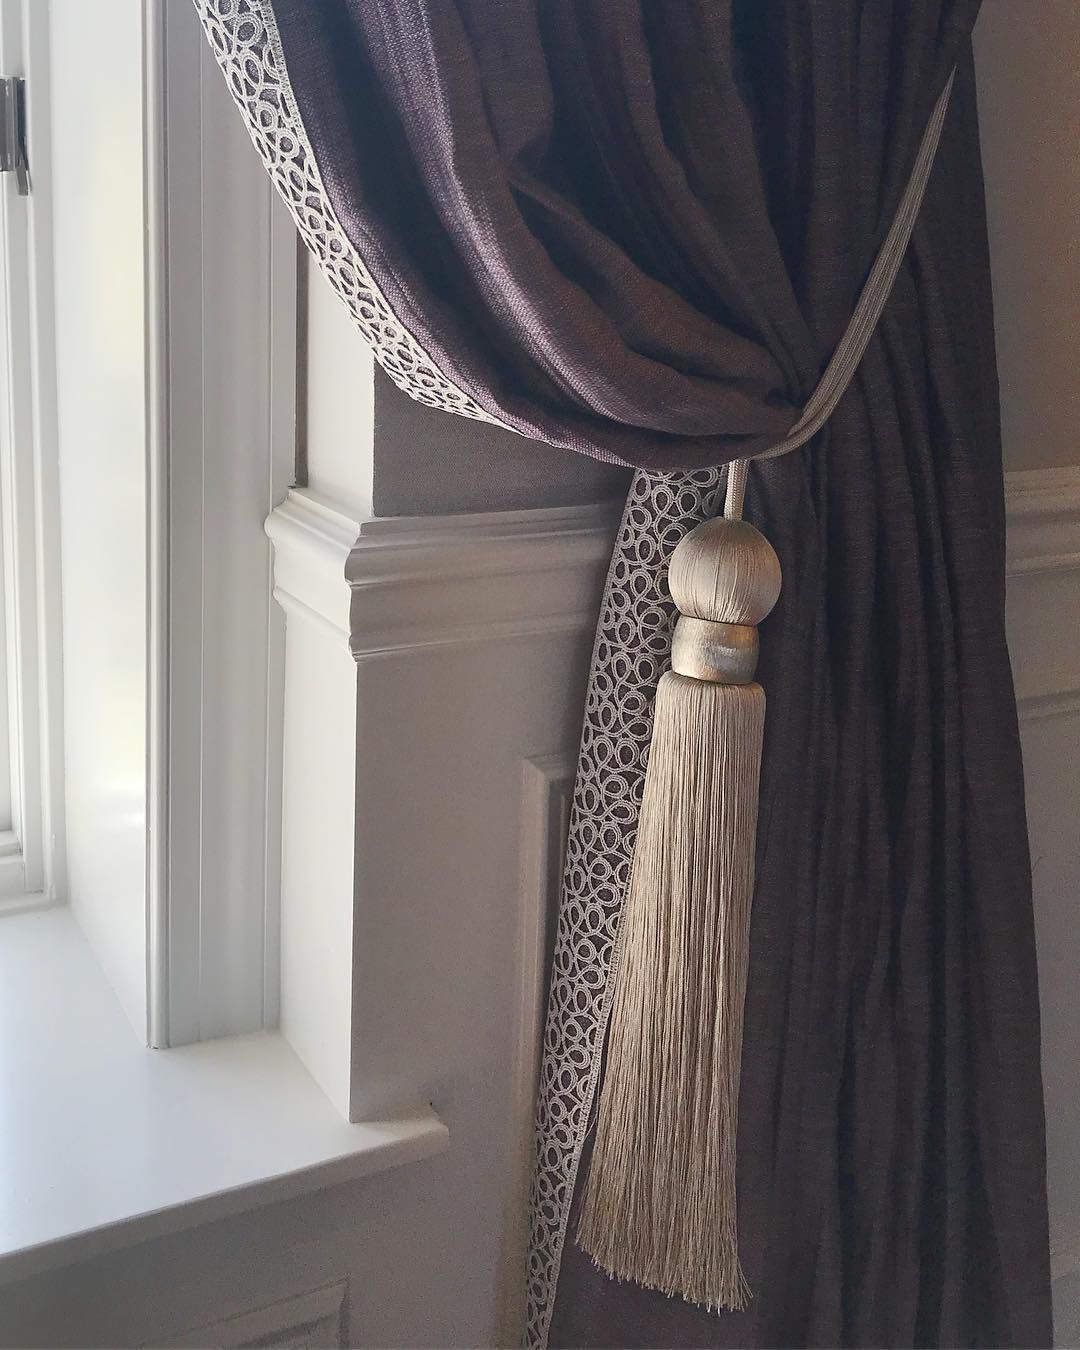 Lush Gold Filigree Braid Sets Off The Edge Of A Plum Curtain With